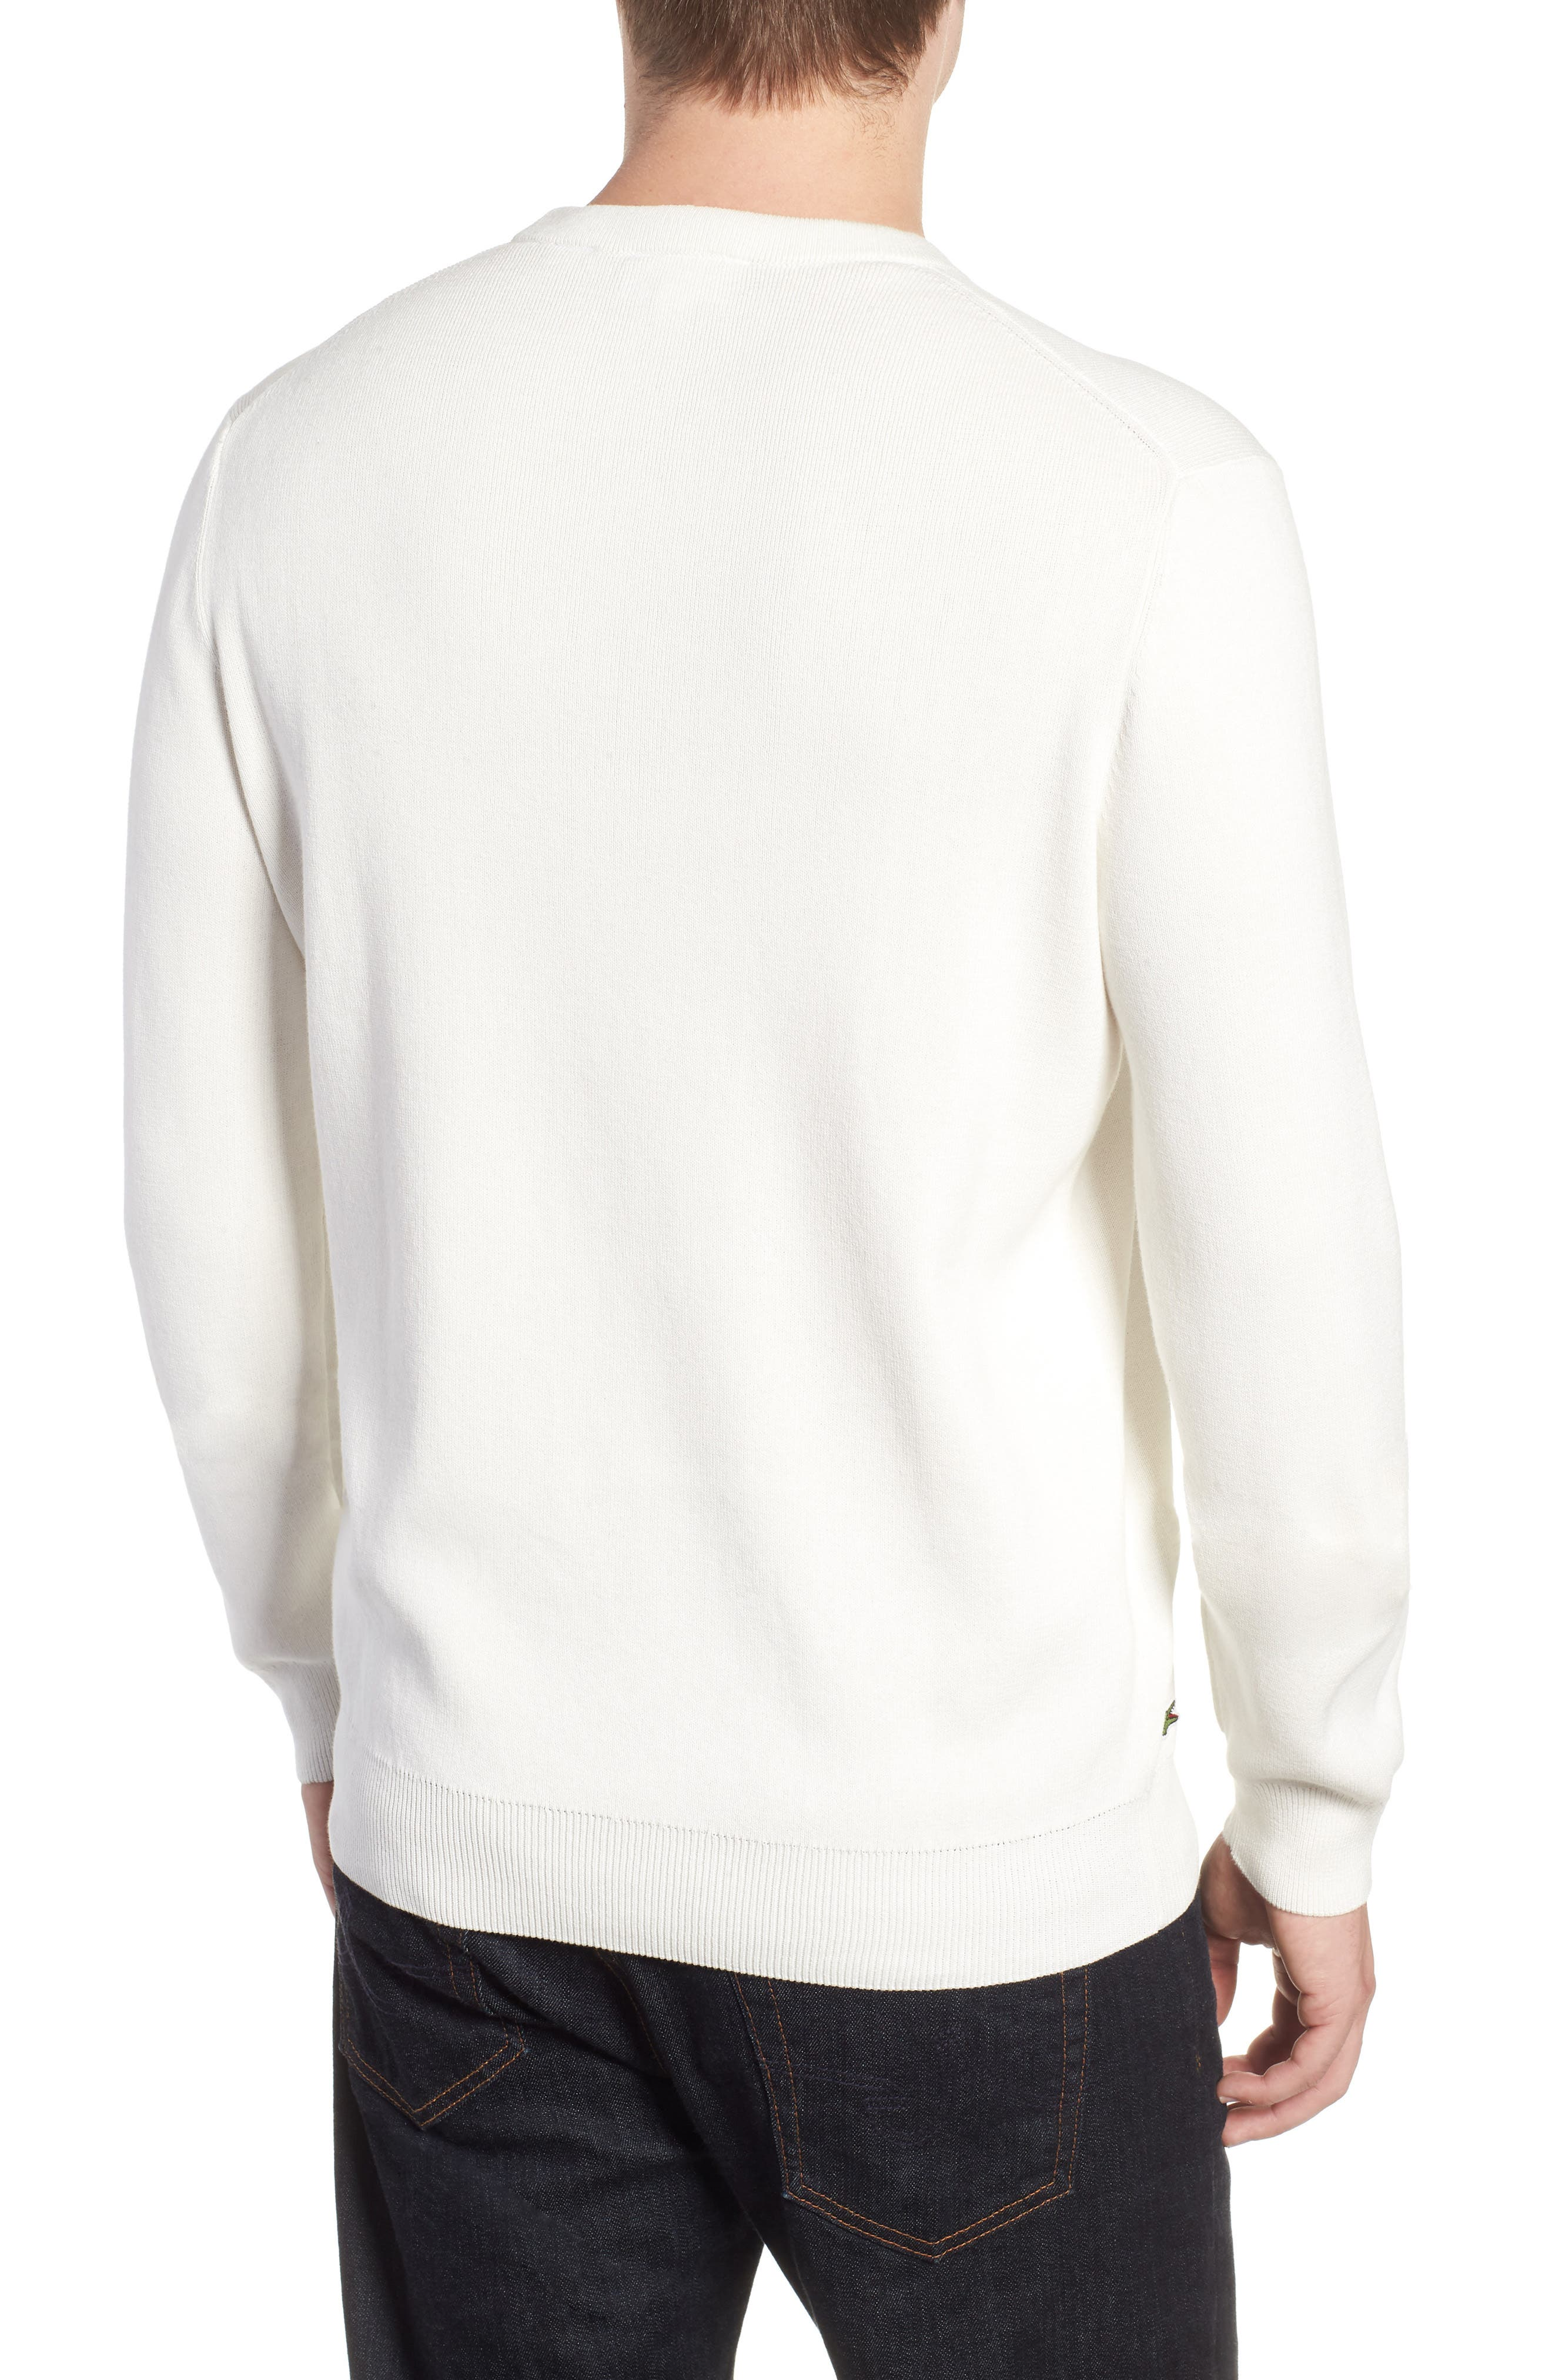 Letter Embroidered Sweater,                             Alternate thumbnail 2, color,                             110